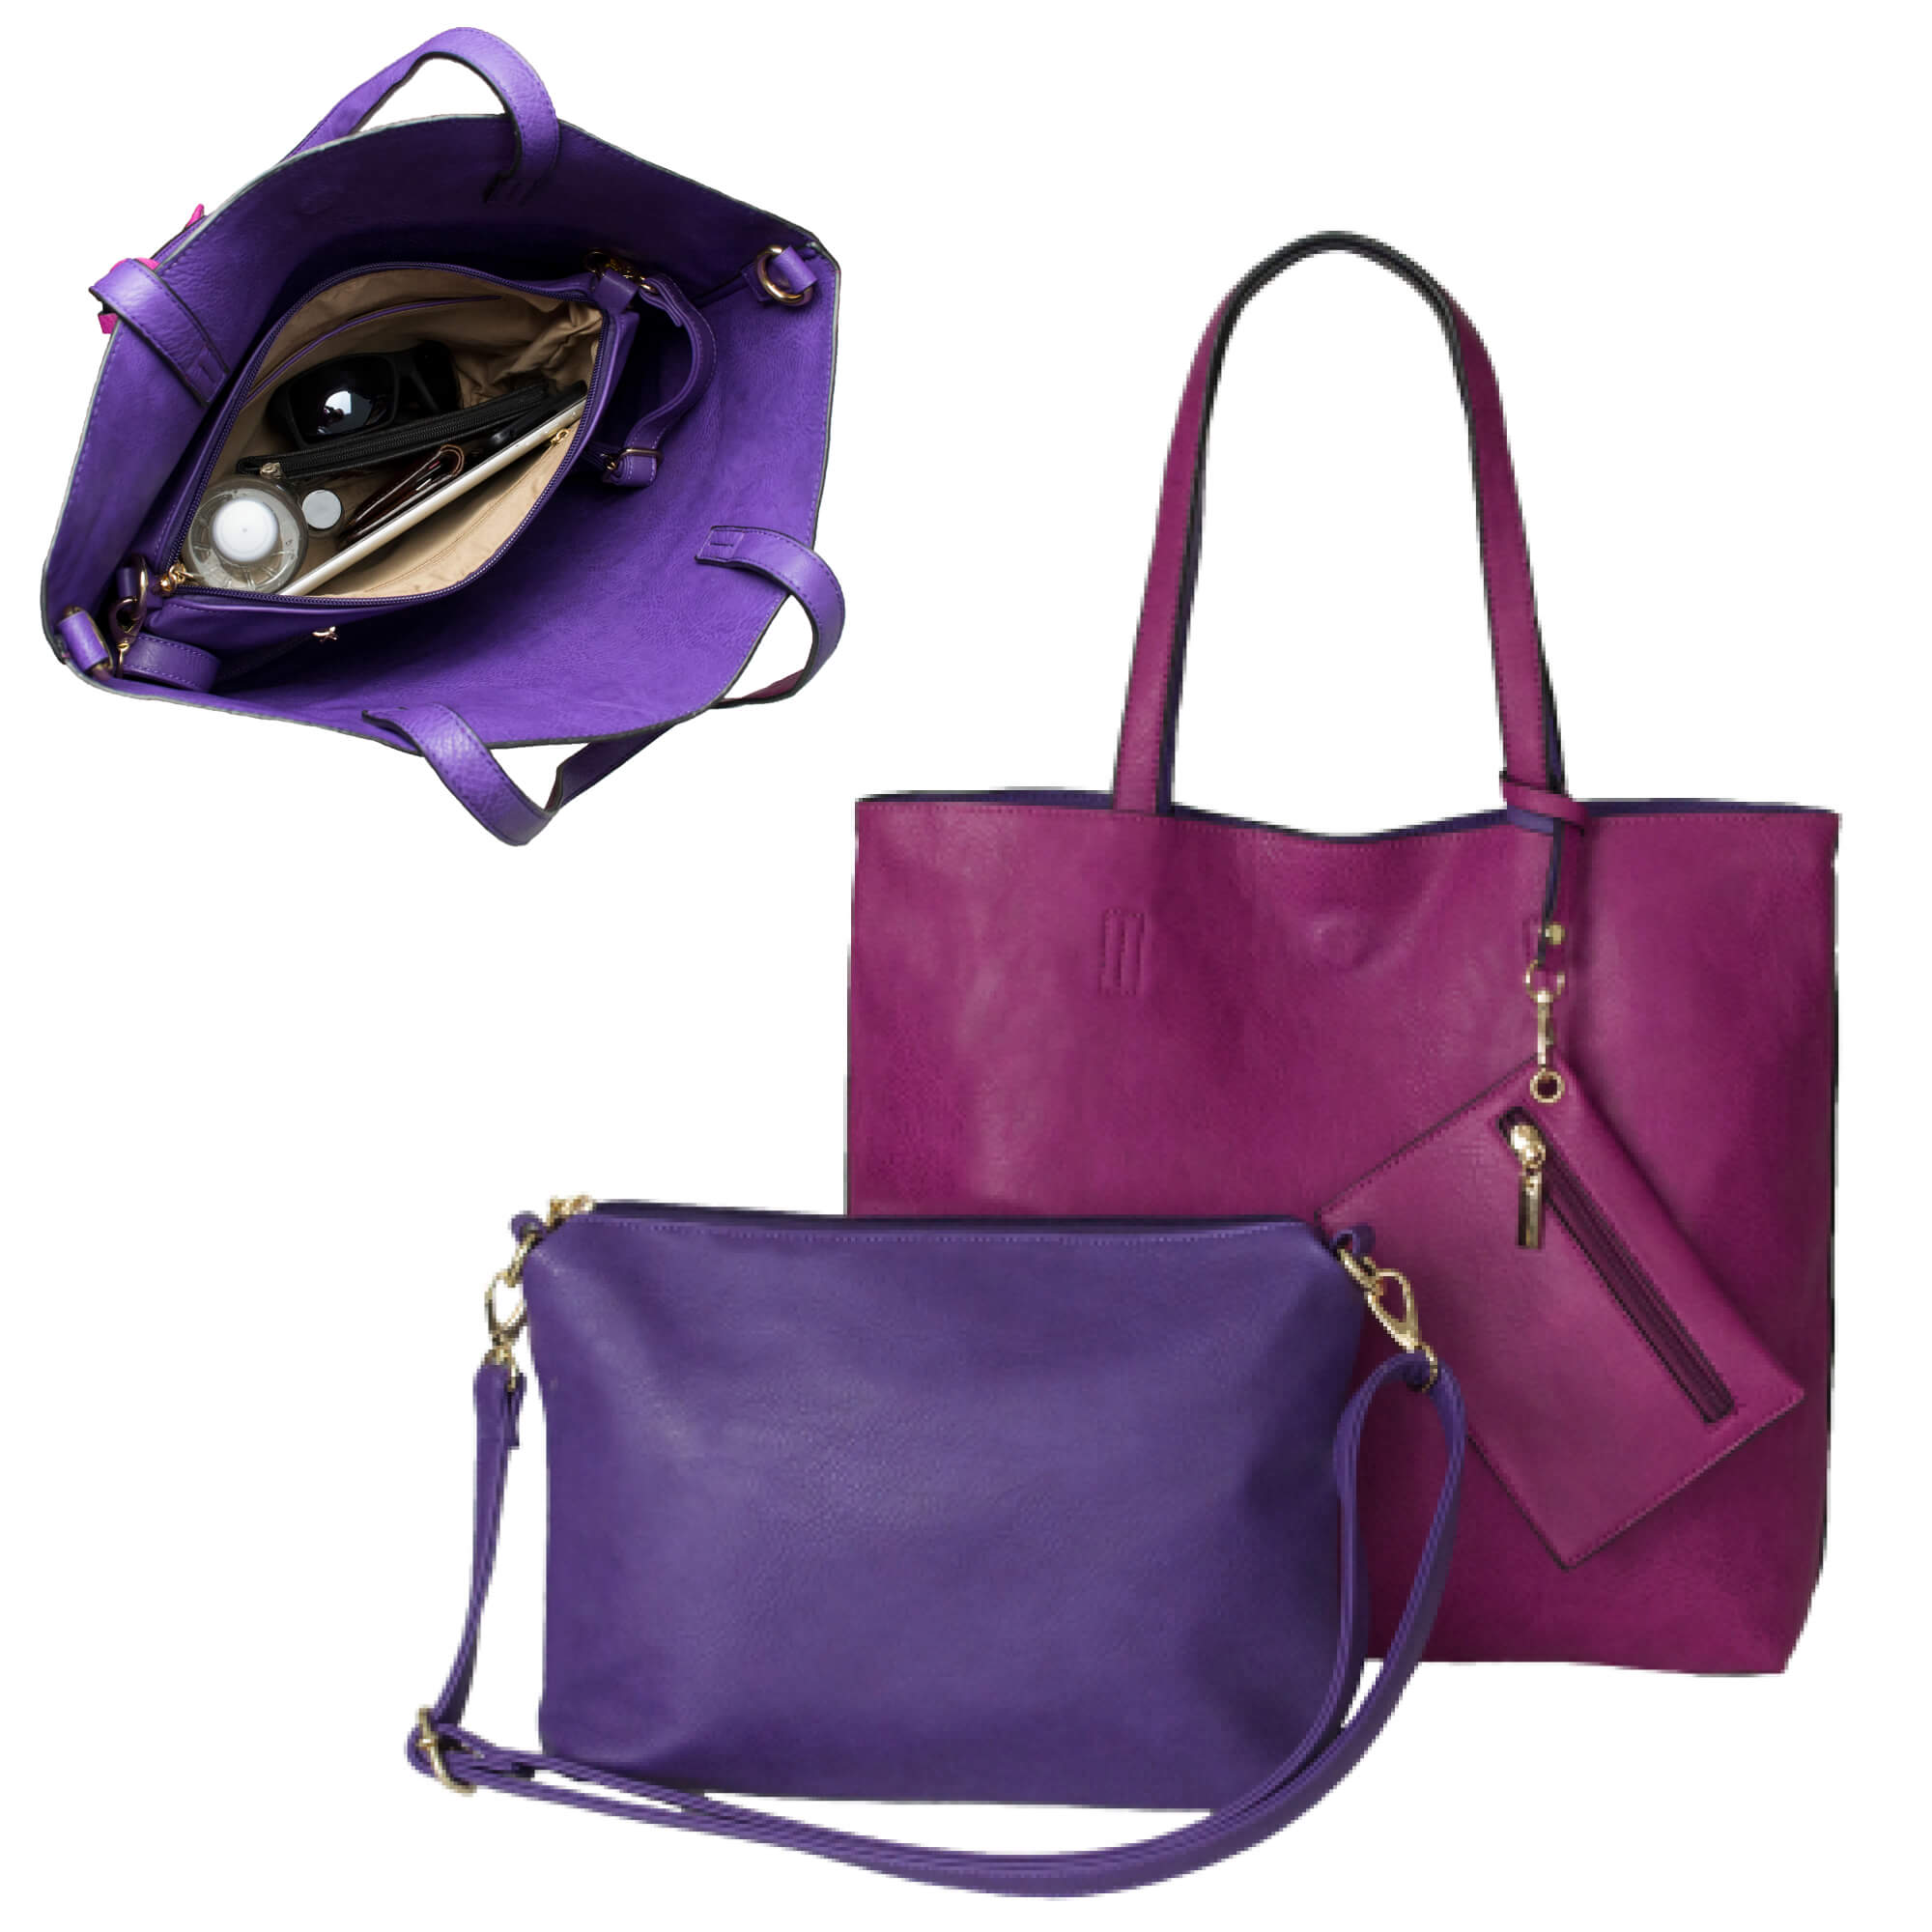 BergsReversibles set in pink and purple.